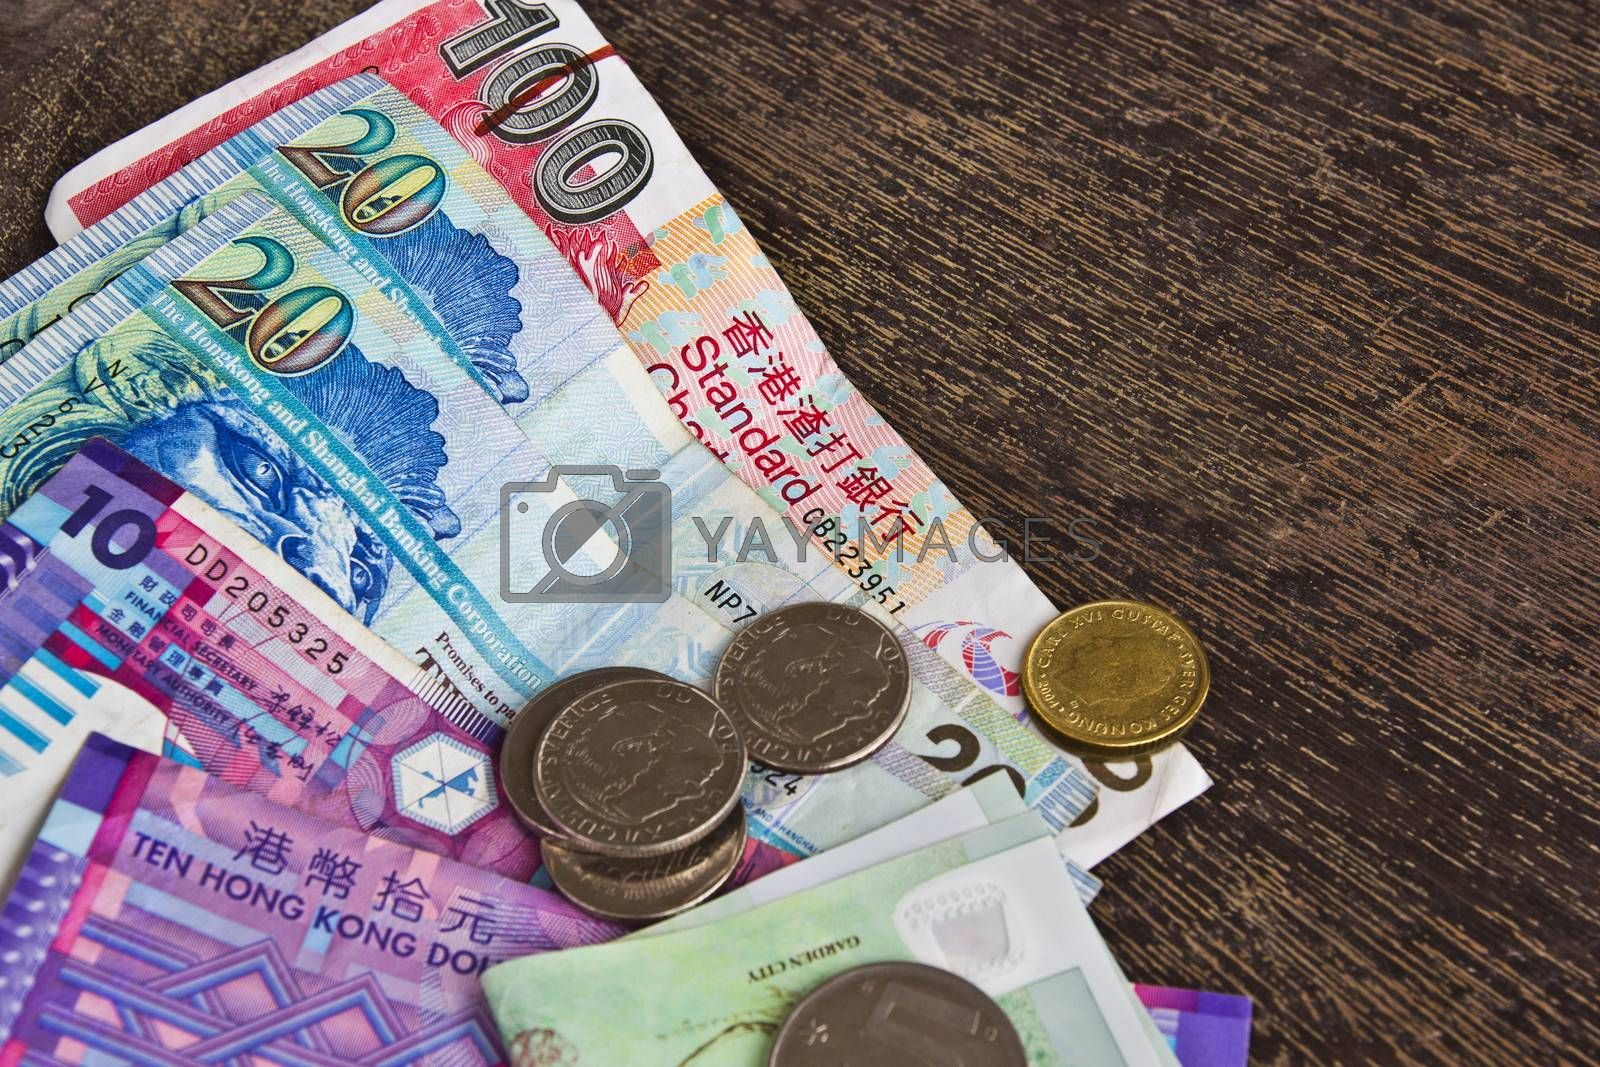 The money of Hong Kong Dollars with notes bank and coin